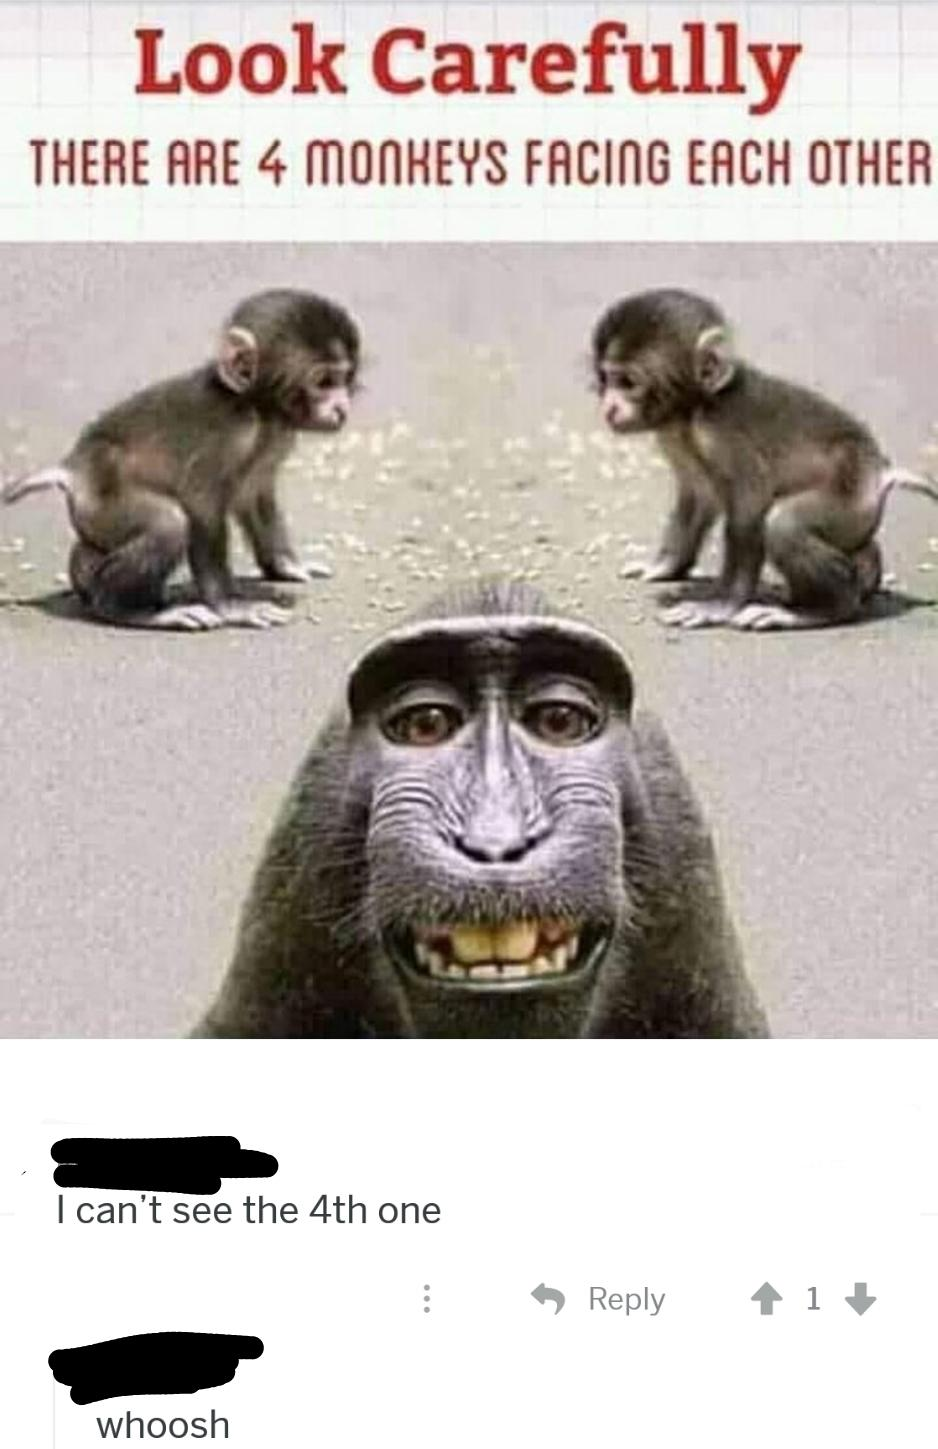 4 Monkeys Images : monkeys, images, Where, Woooosh